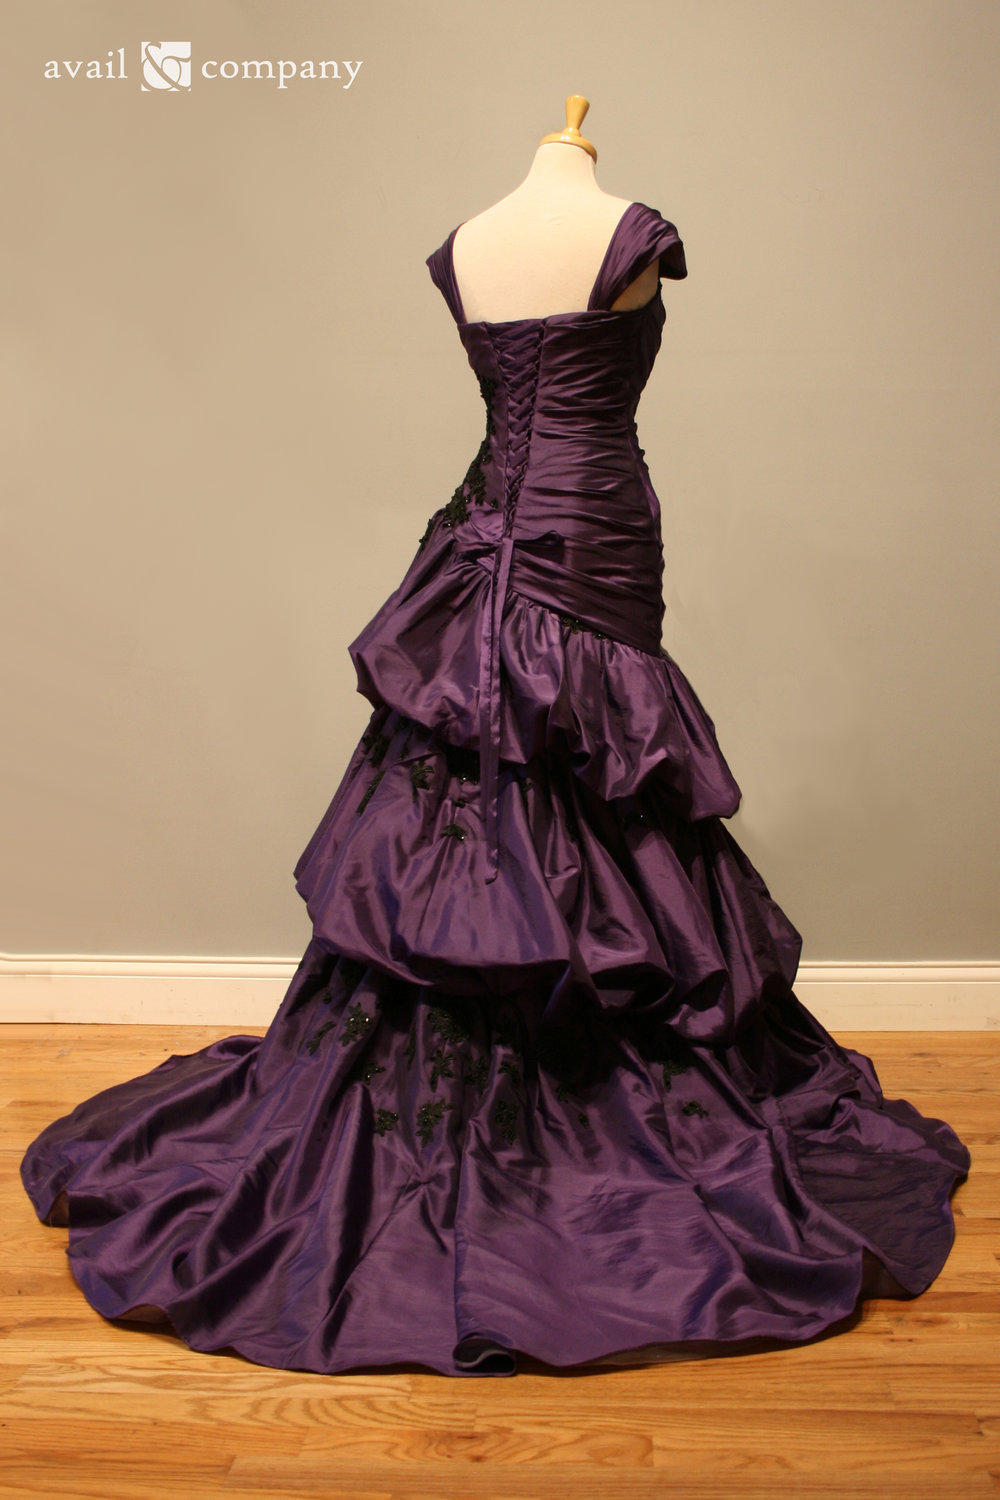 !Purple Wedding Dress Gothic Black Lace 005-0005.jpg